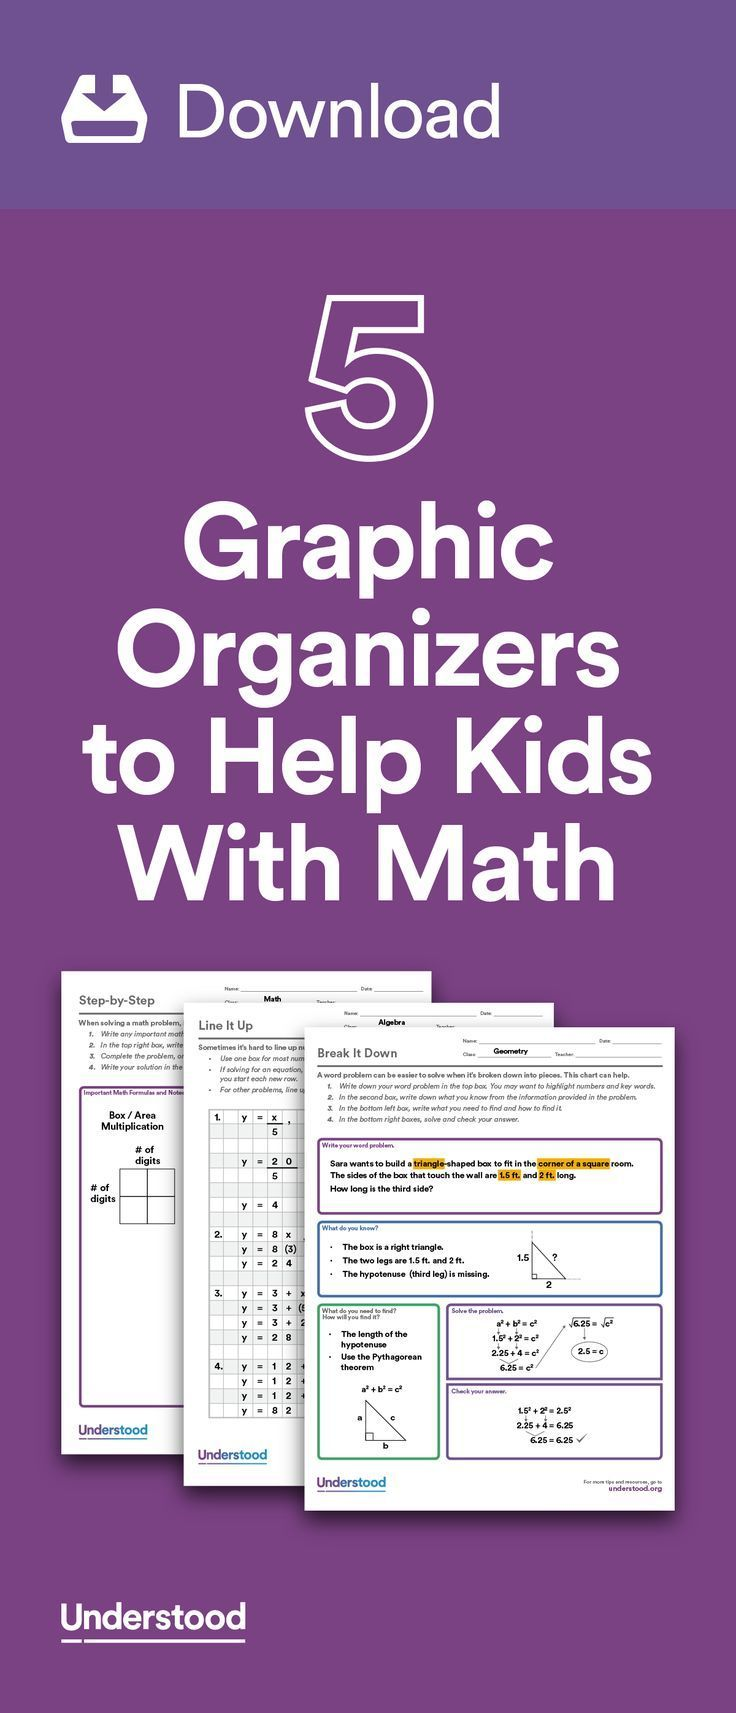 If your child has trouble with math because of dyscalculia or other learning and attention issues, graphic organizers can help. Graphic organizers allow kids to break down math problems into sequential steps. #mathlessons